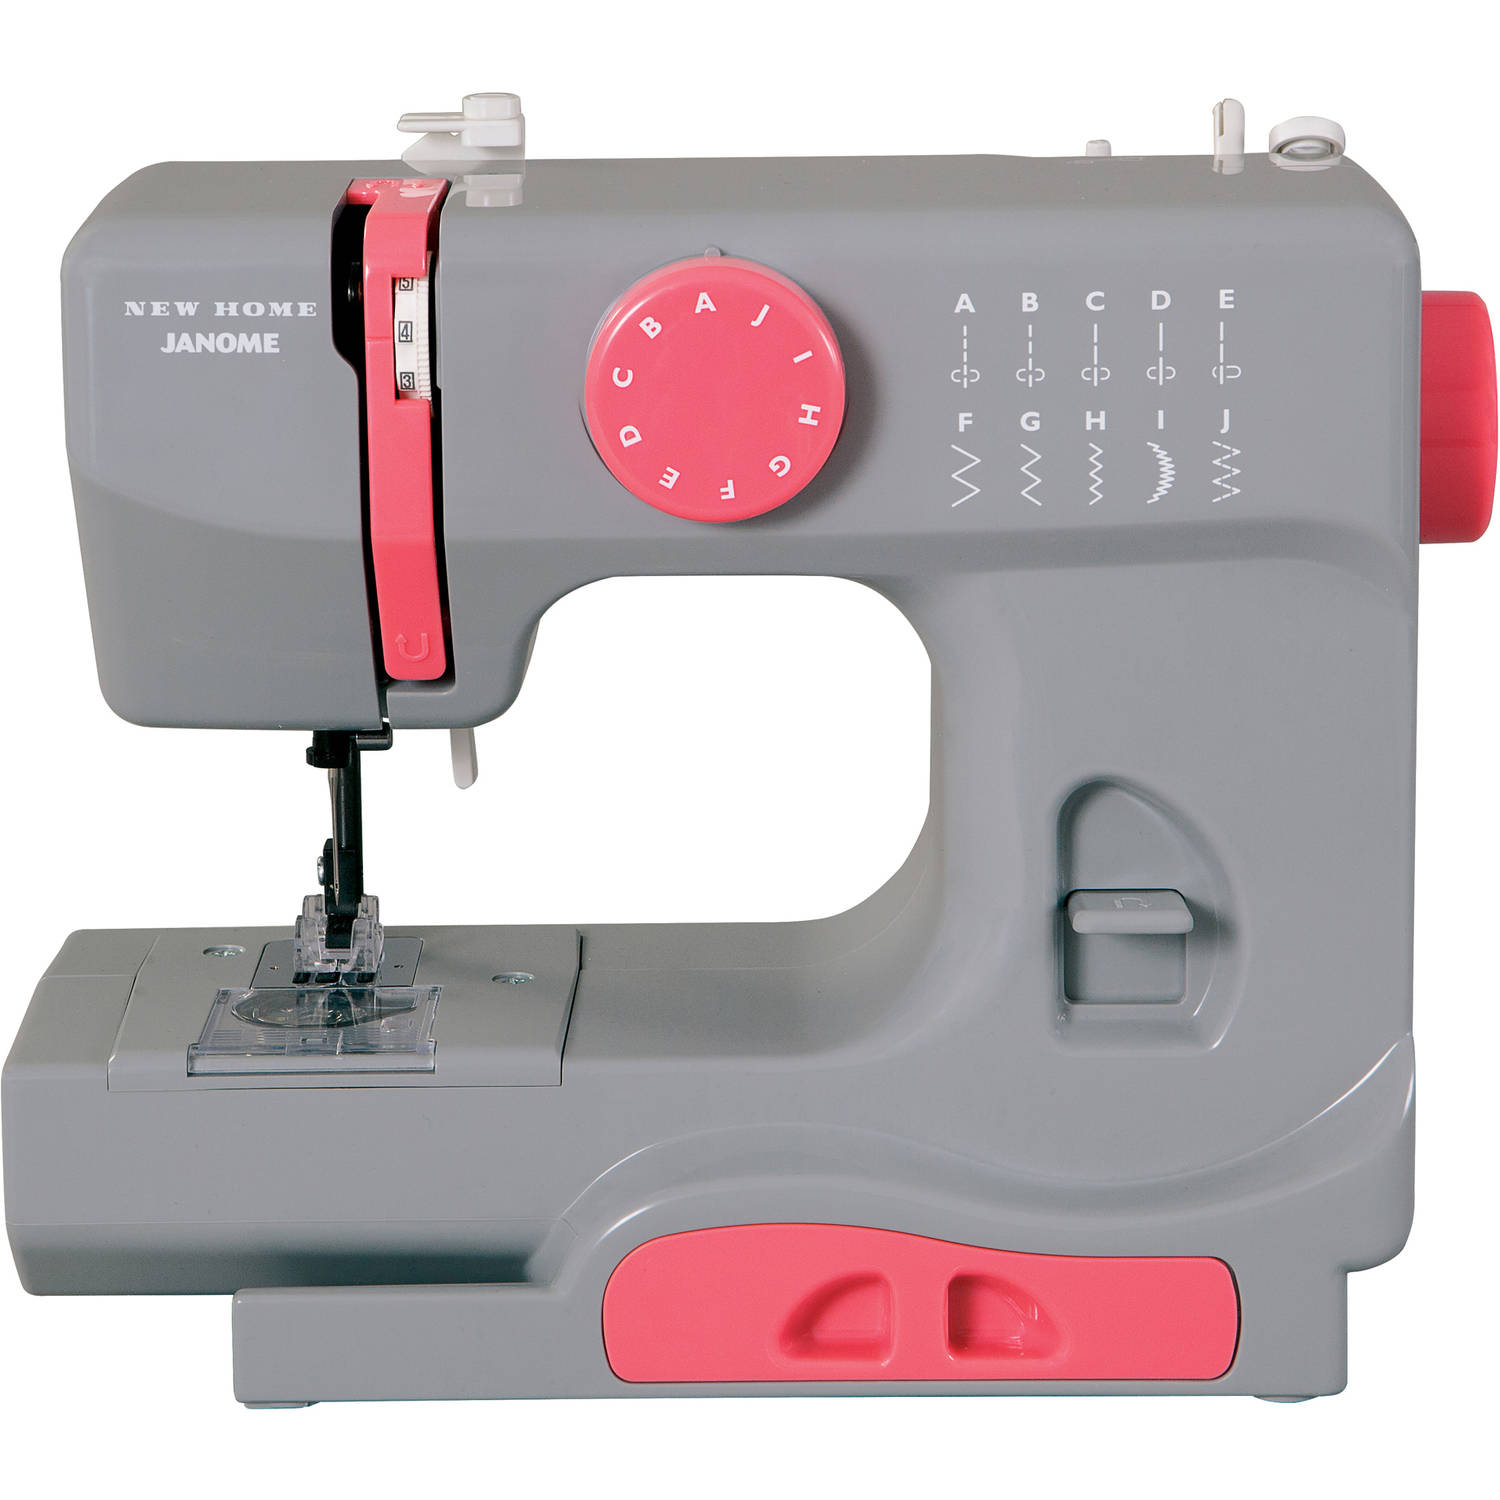 Janome Basic 10-Stitch Portable Sewing Machine Available In Multiple Colors